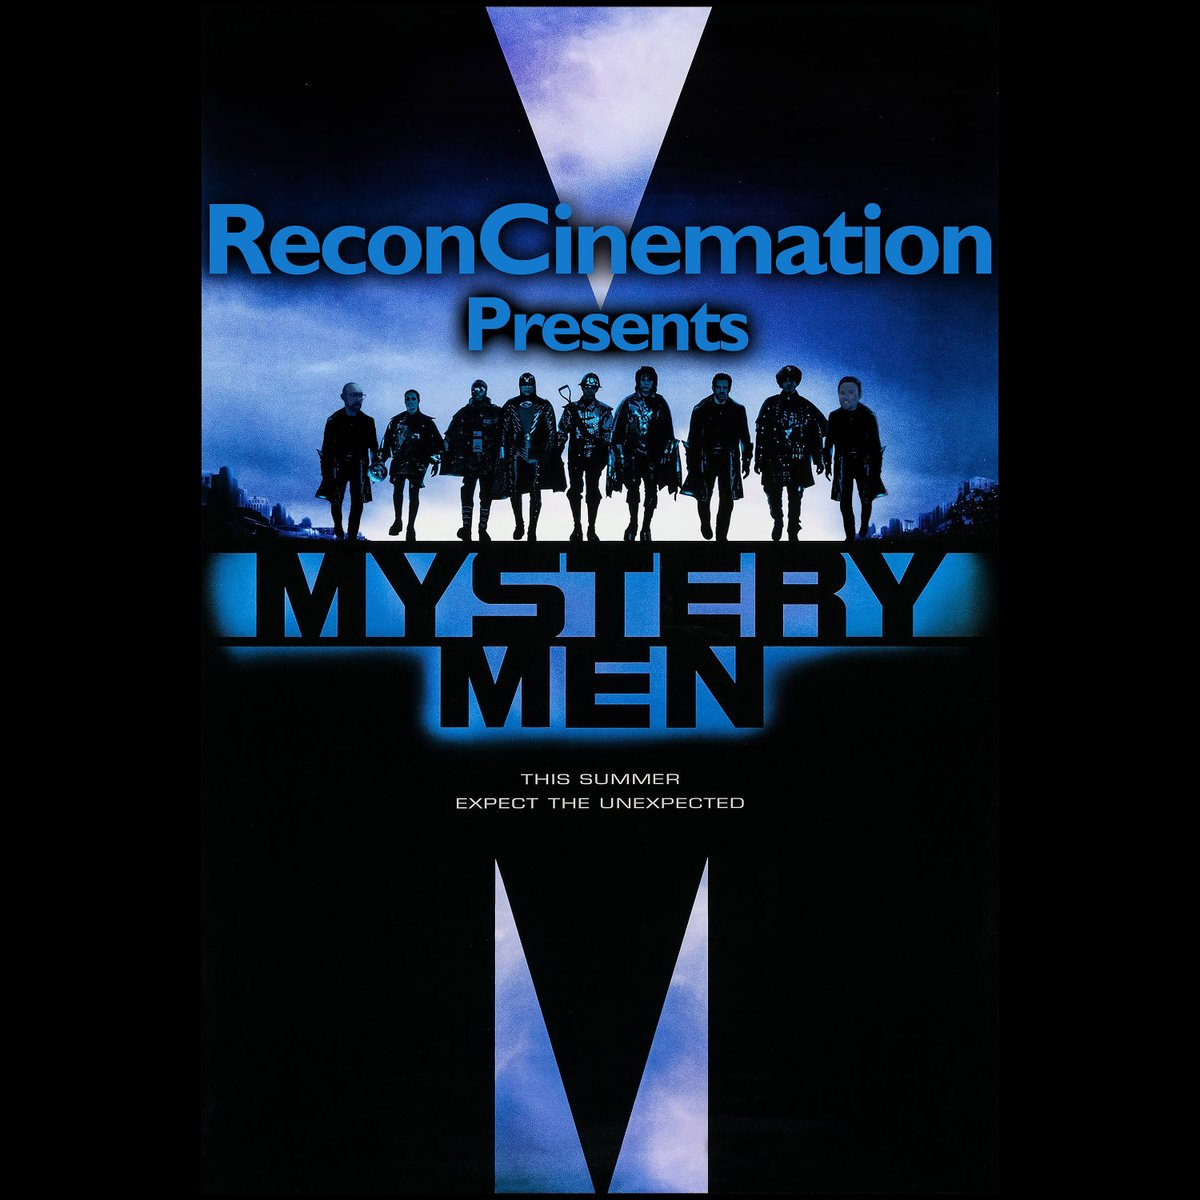 Released this day in #film history, August 6th!  Check out our #podcast looking back at #MysteryMen!  https://www.reconcinemation.com/e/mystery-men-1592185965/…  #podernfamily @PodcastMovement @PodNationPods @Podchaser @GoodpodsHQ #90s #90sMovies #benstiller #williamhmacy #hankazaria #janeanegarofolo #gregkinnearpic.twitter.com/o9FkQhC9Wb